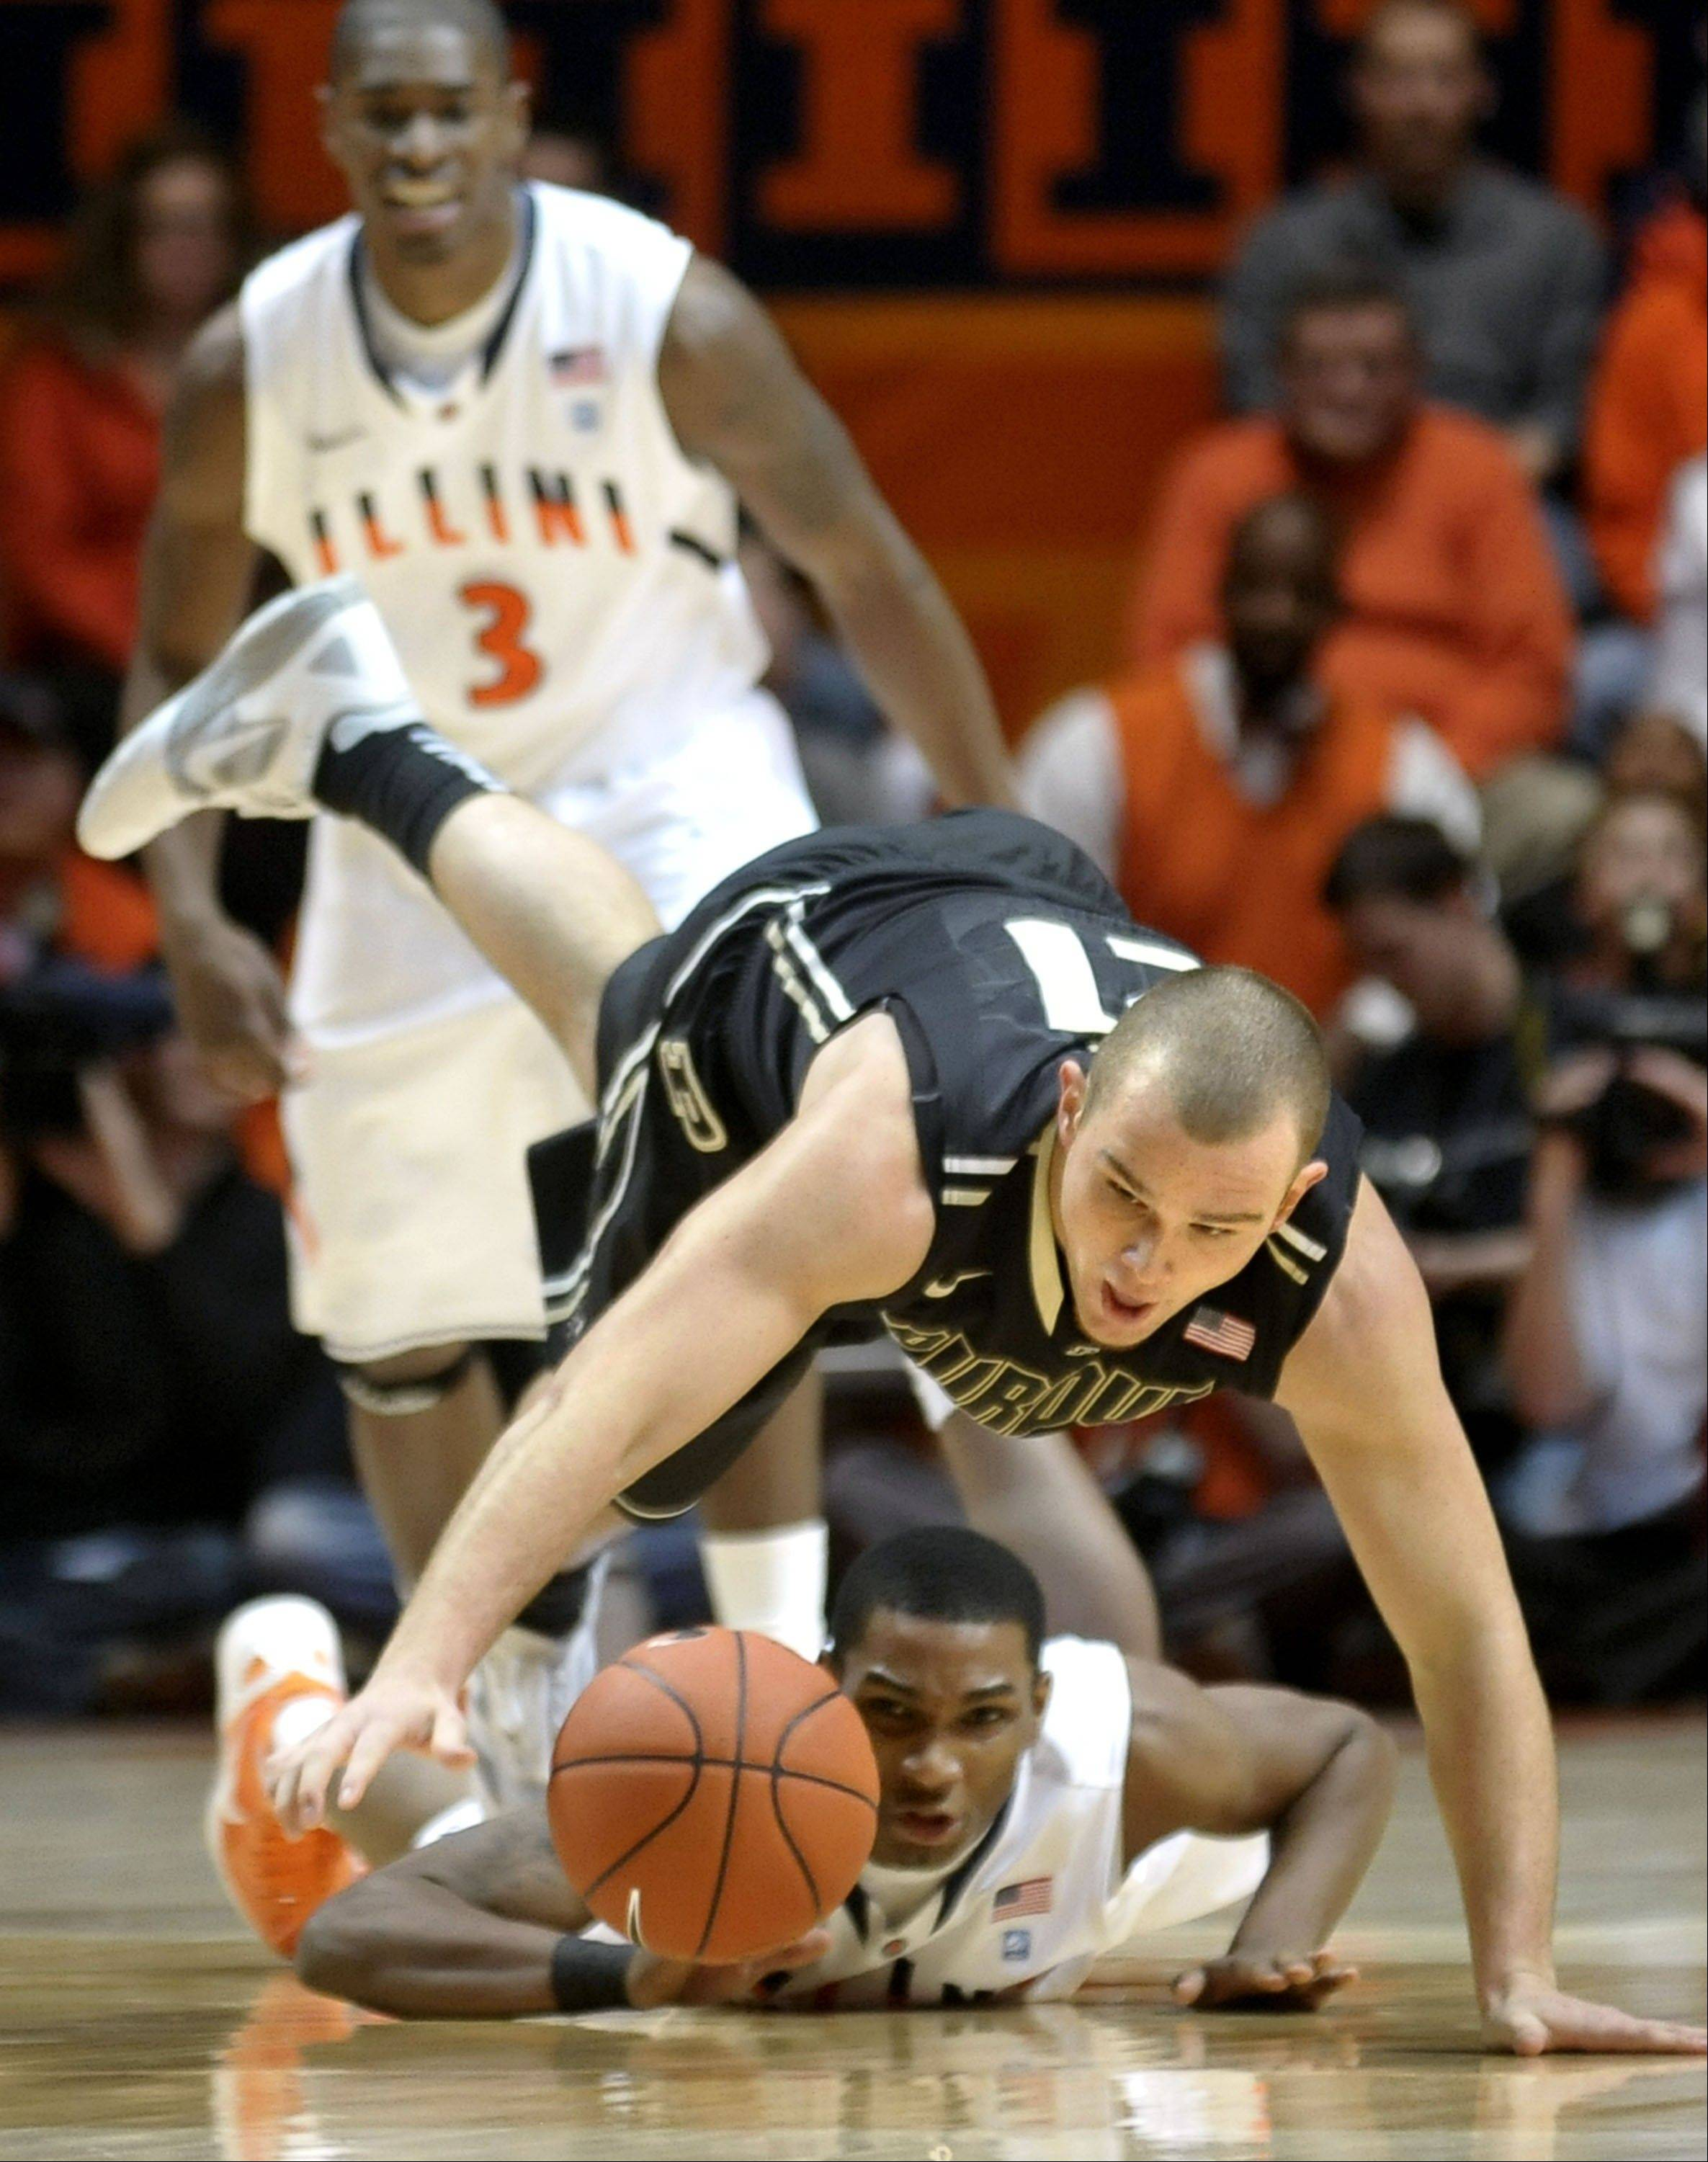 Purdue hoping young team keeps success alive